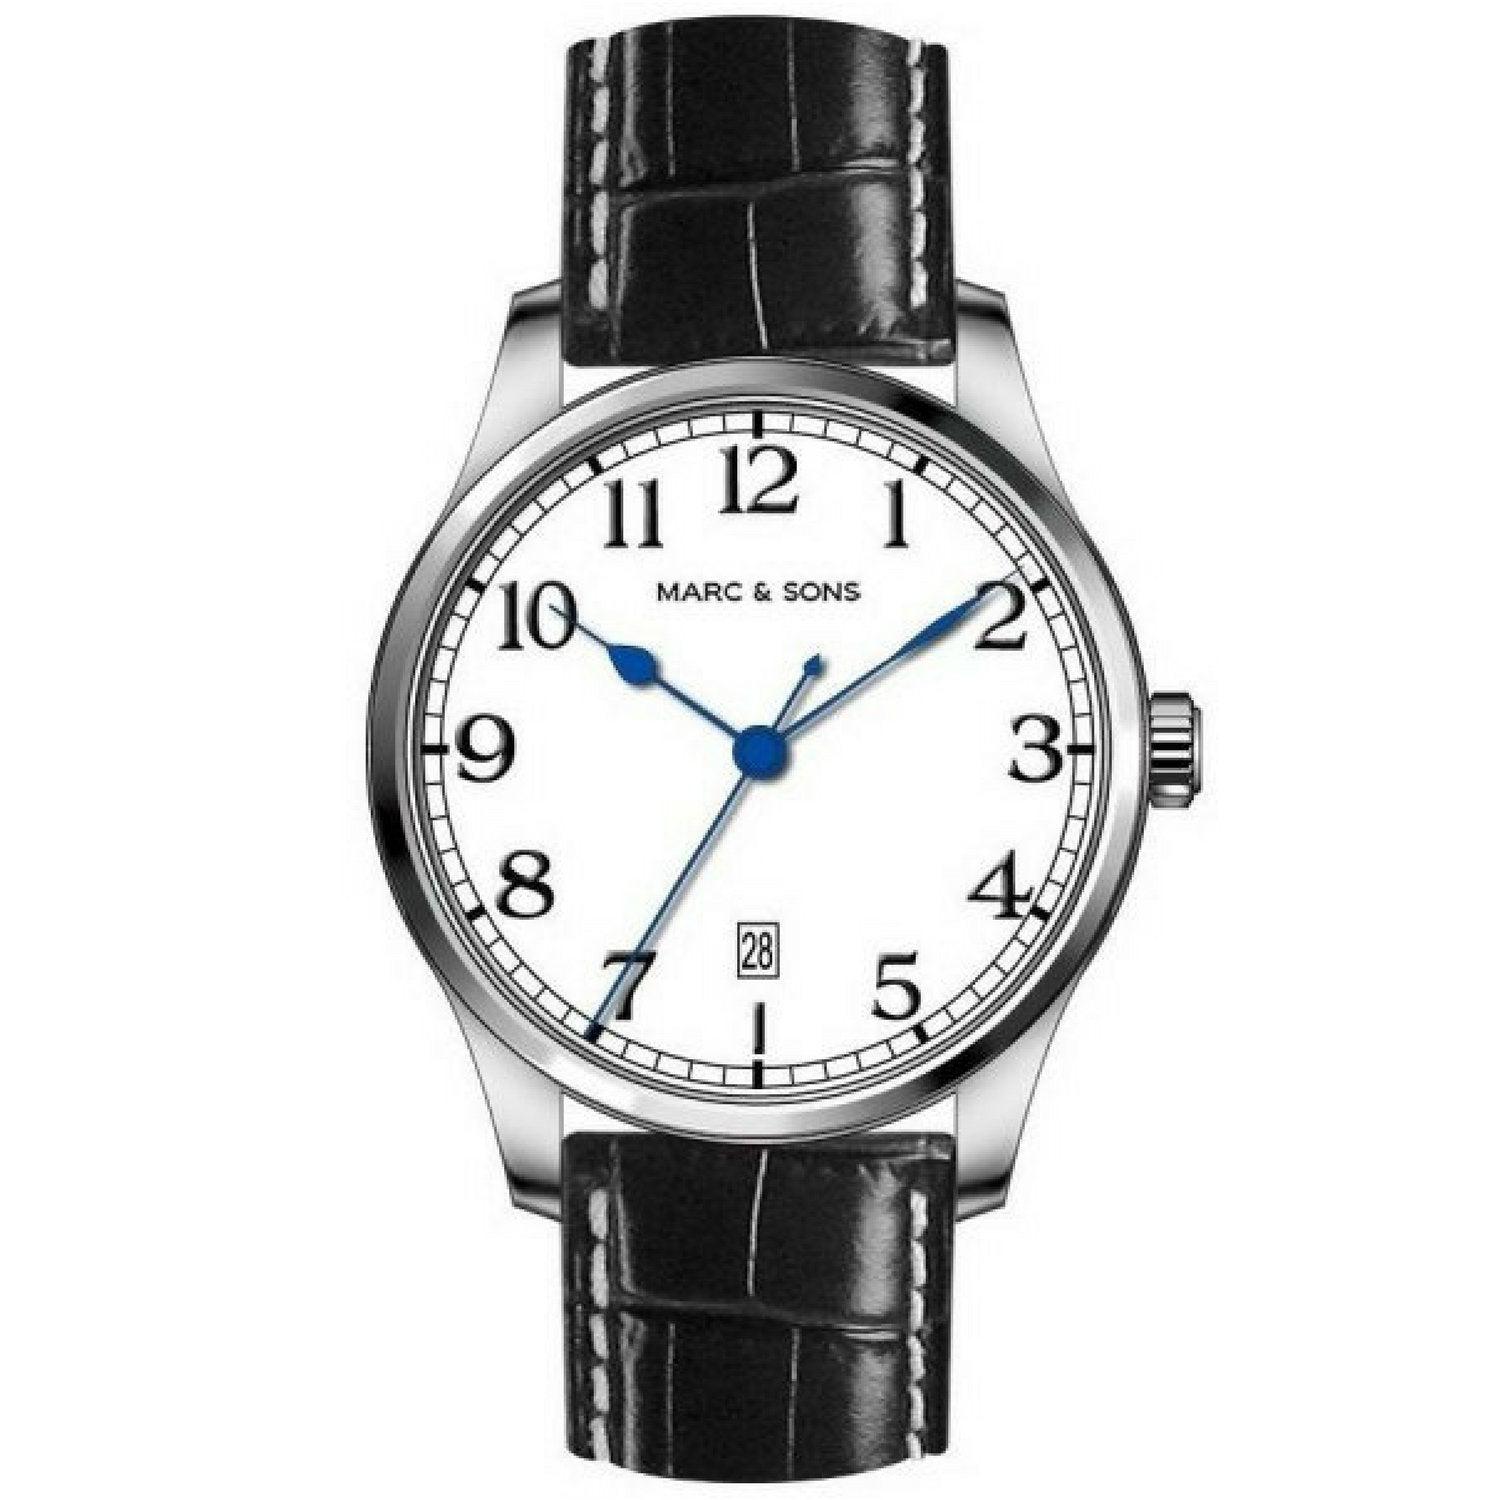 MARC & SONS Marine Automatic Watch Date (White Dial) MSM-006